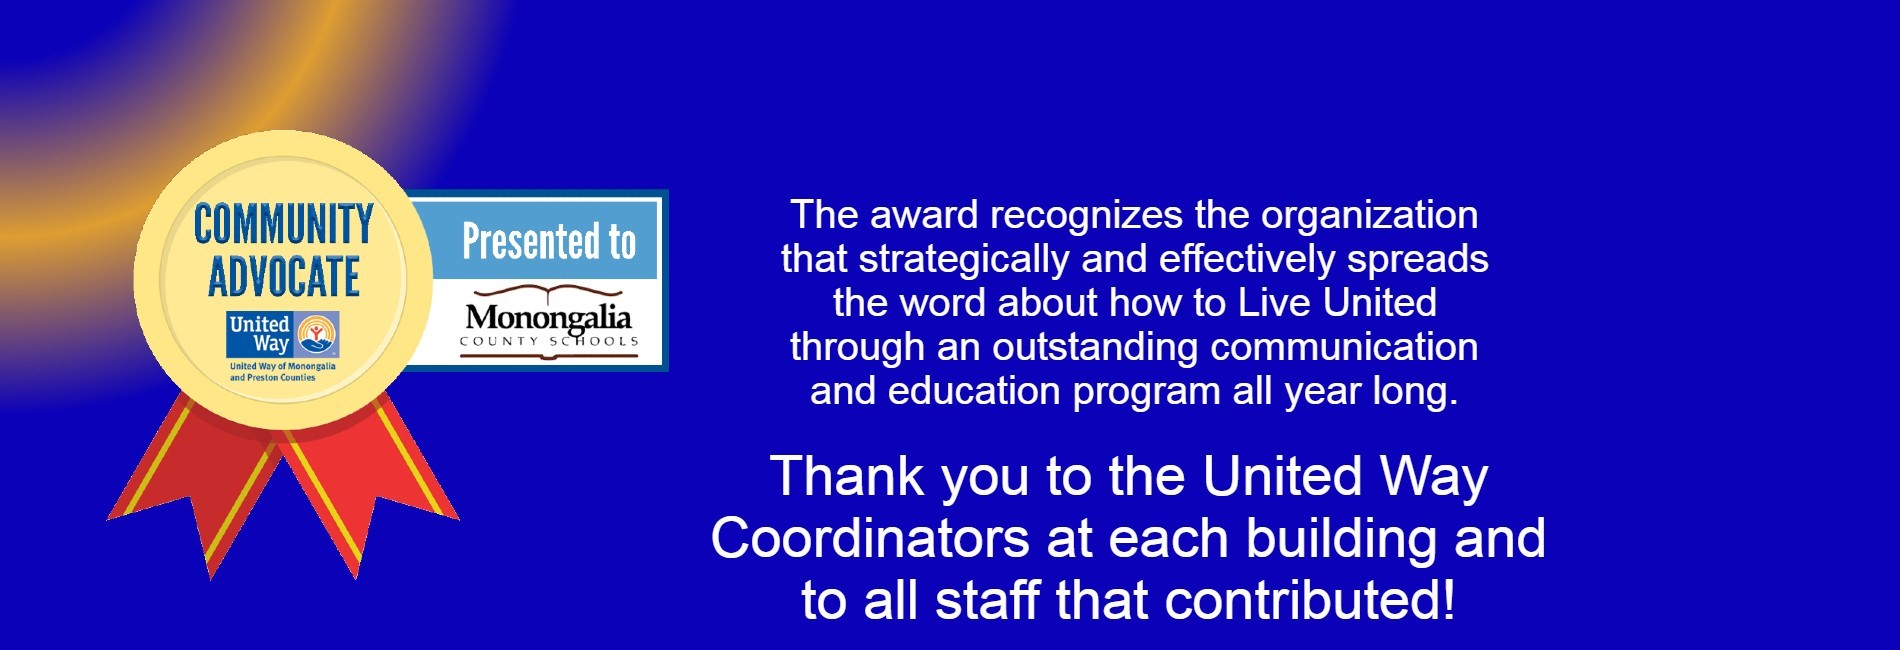 Community Advocate award from United Way 2021